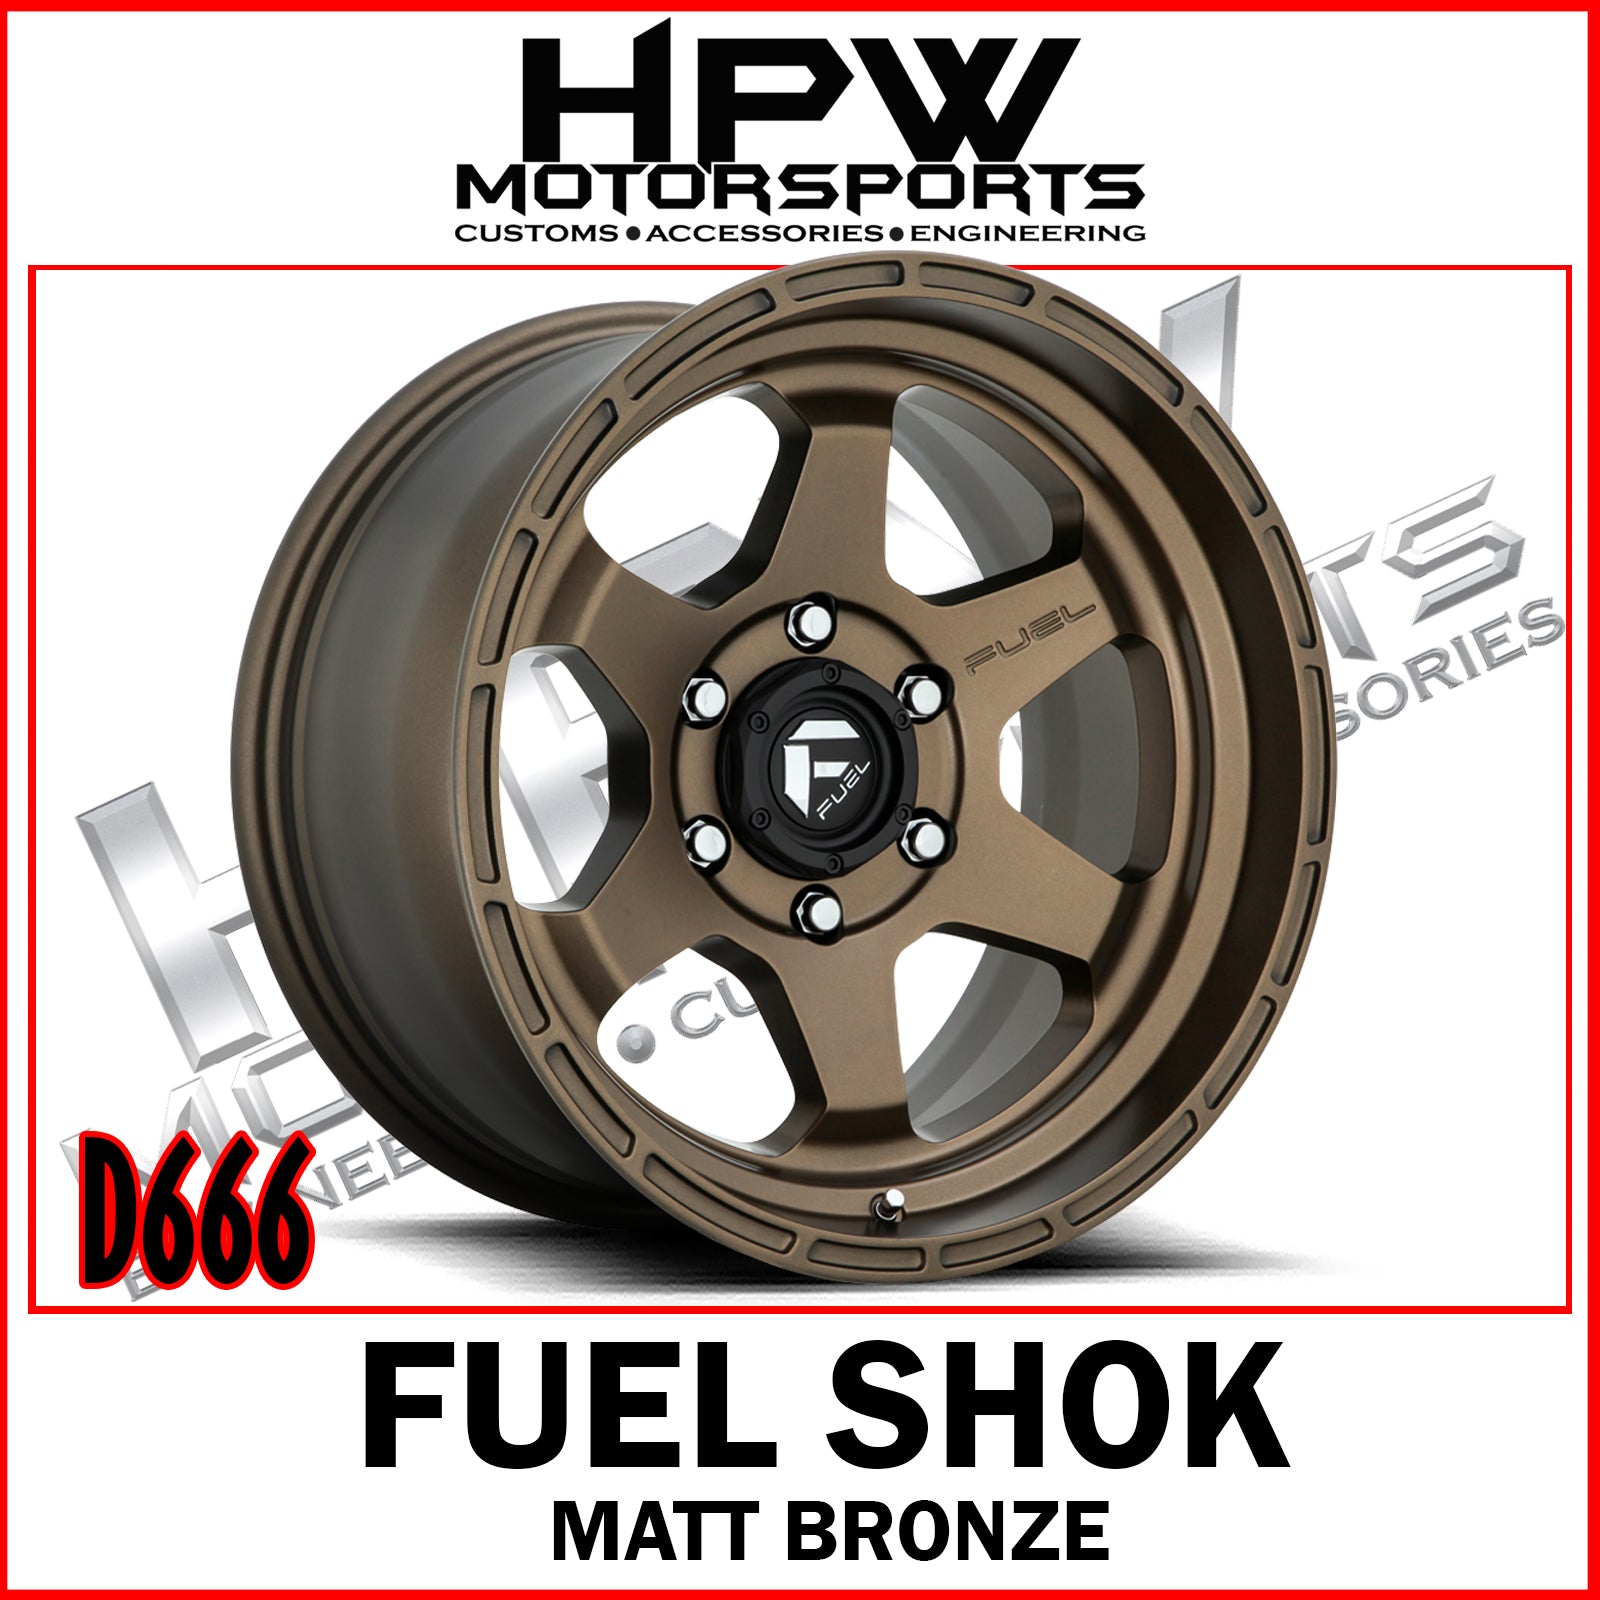 D666 FUEL SHOK - MATT BRONZE - Set of 4